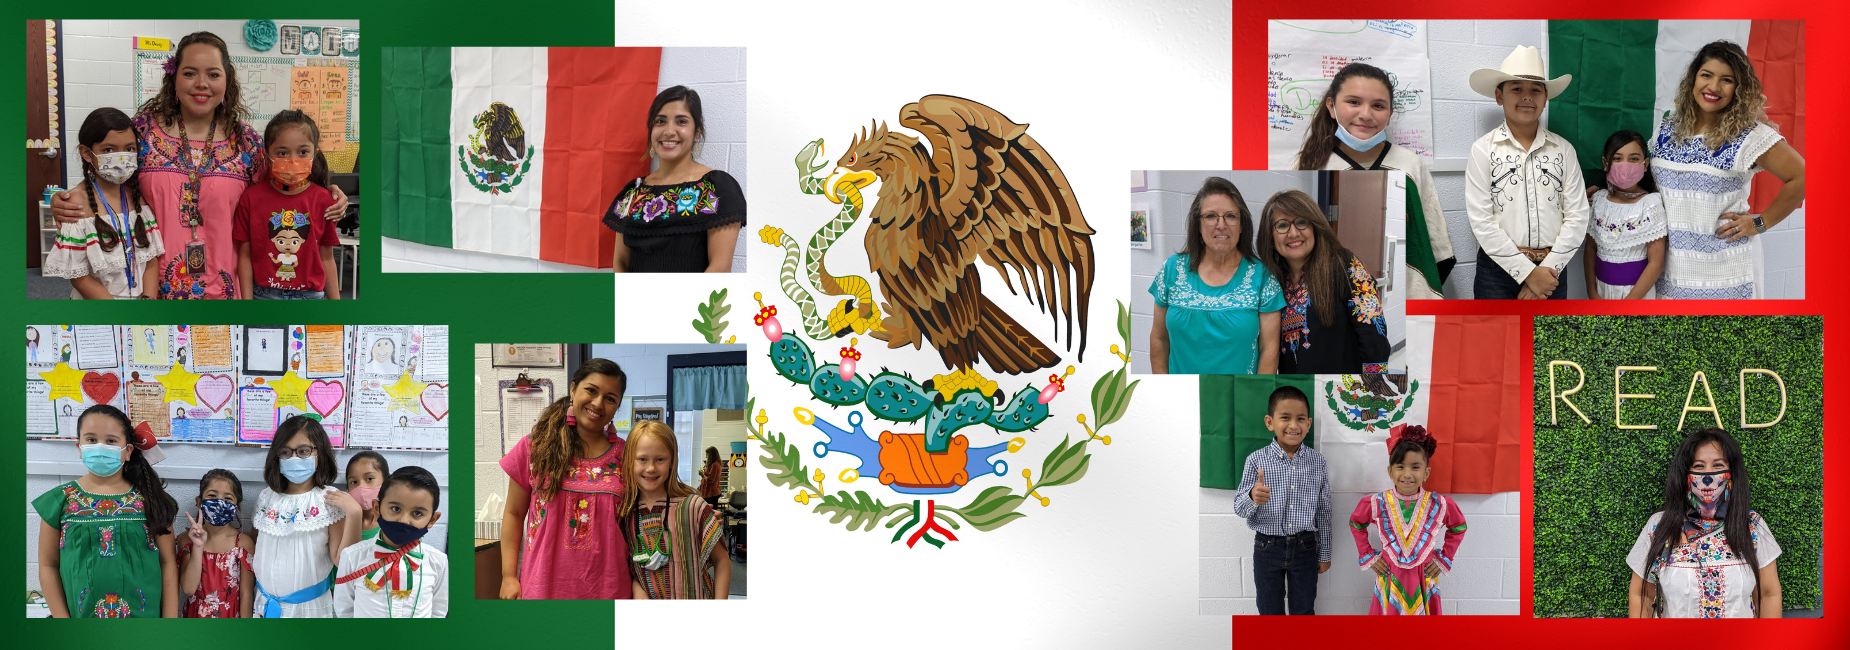 collage of students and teachers dressed up for Mexican heritage month